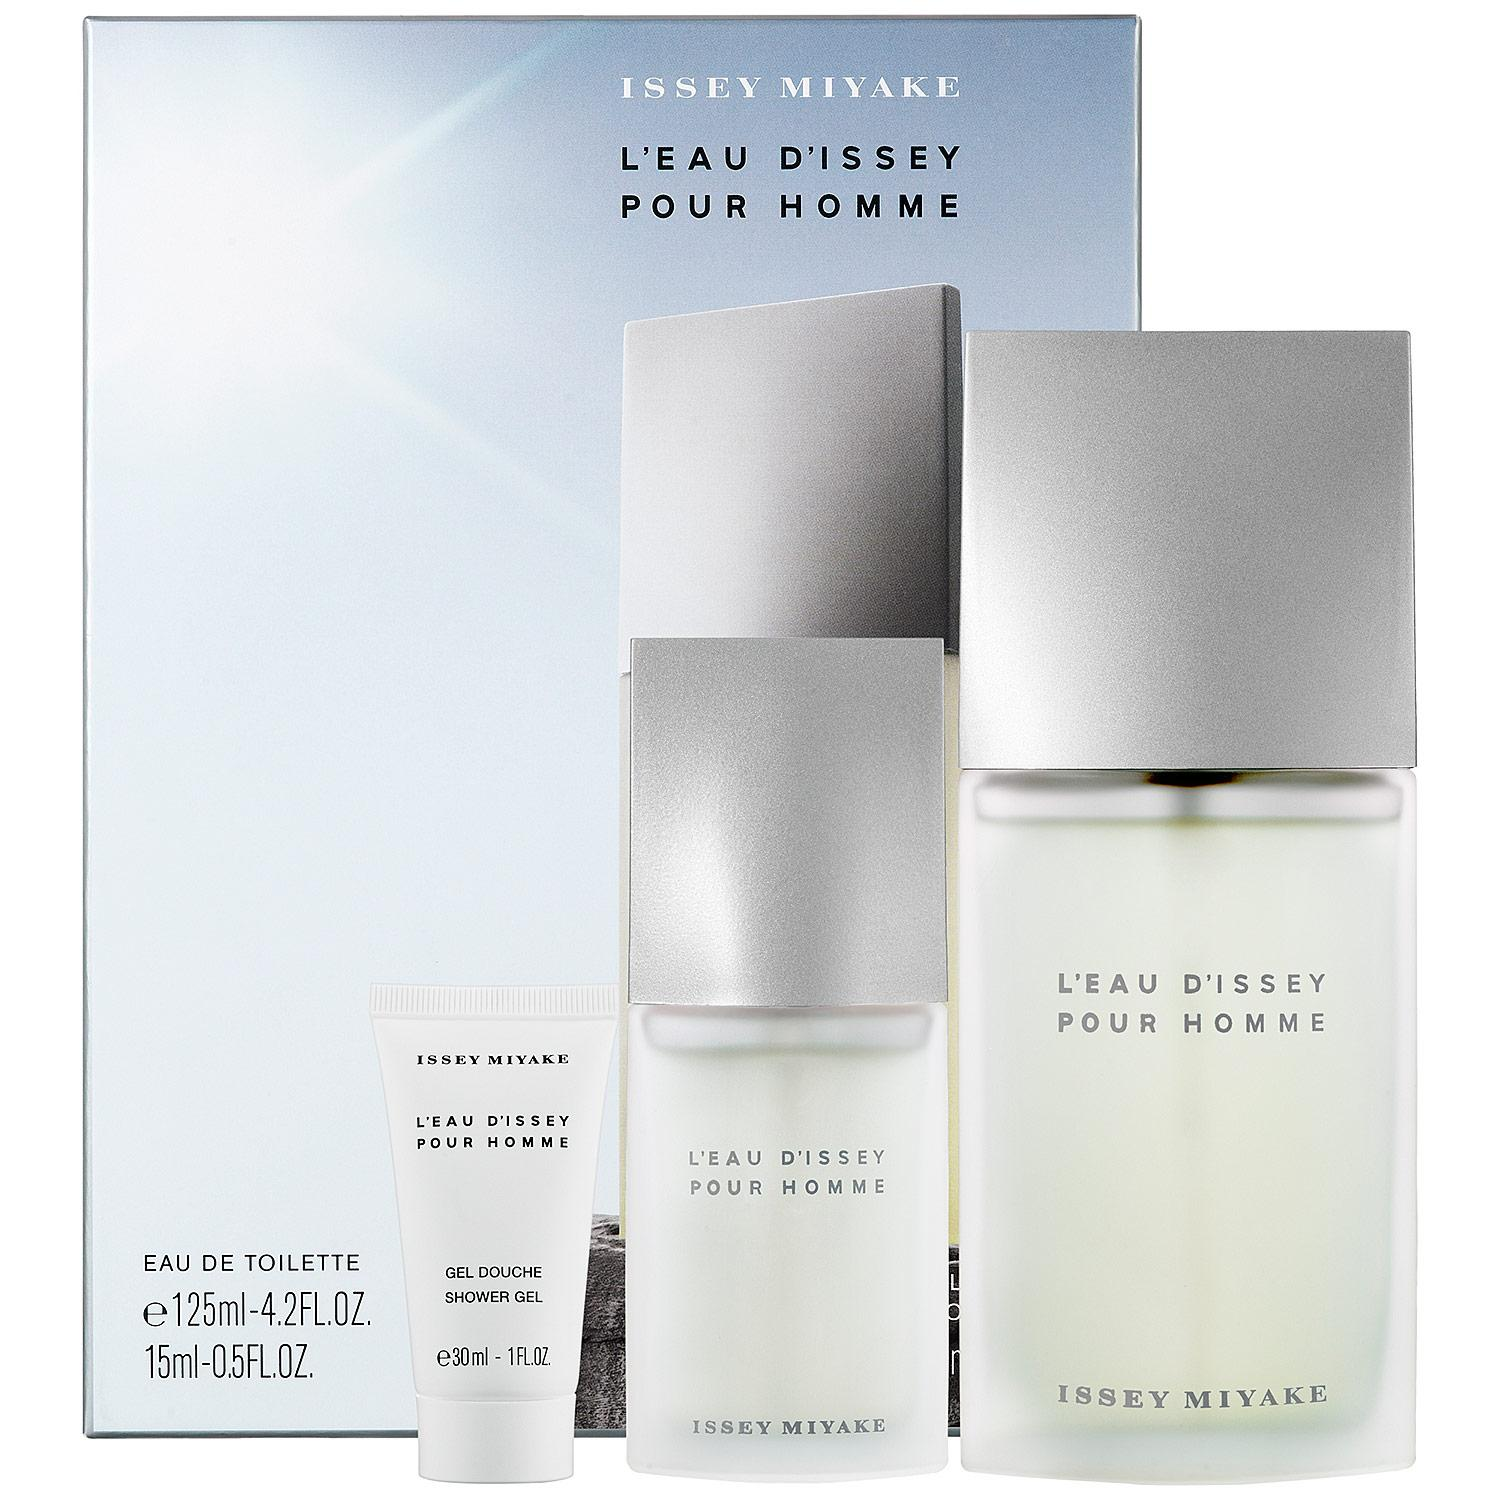 issey miyake l 39 eau d 39 issey pour homme gift set questions. Black Bedroom Furniture Sets. Home Design Ideas